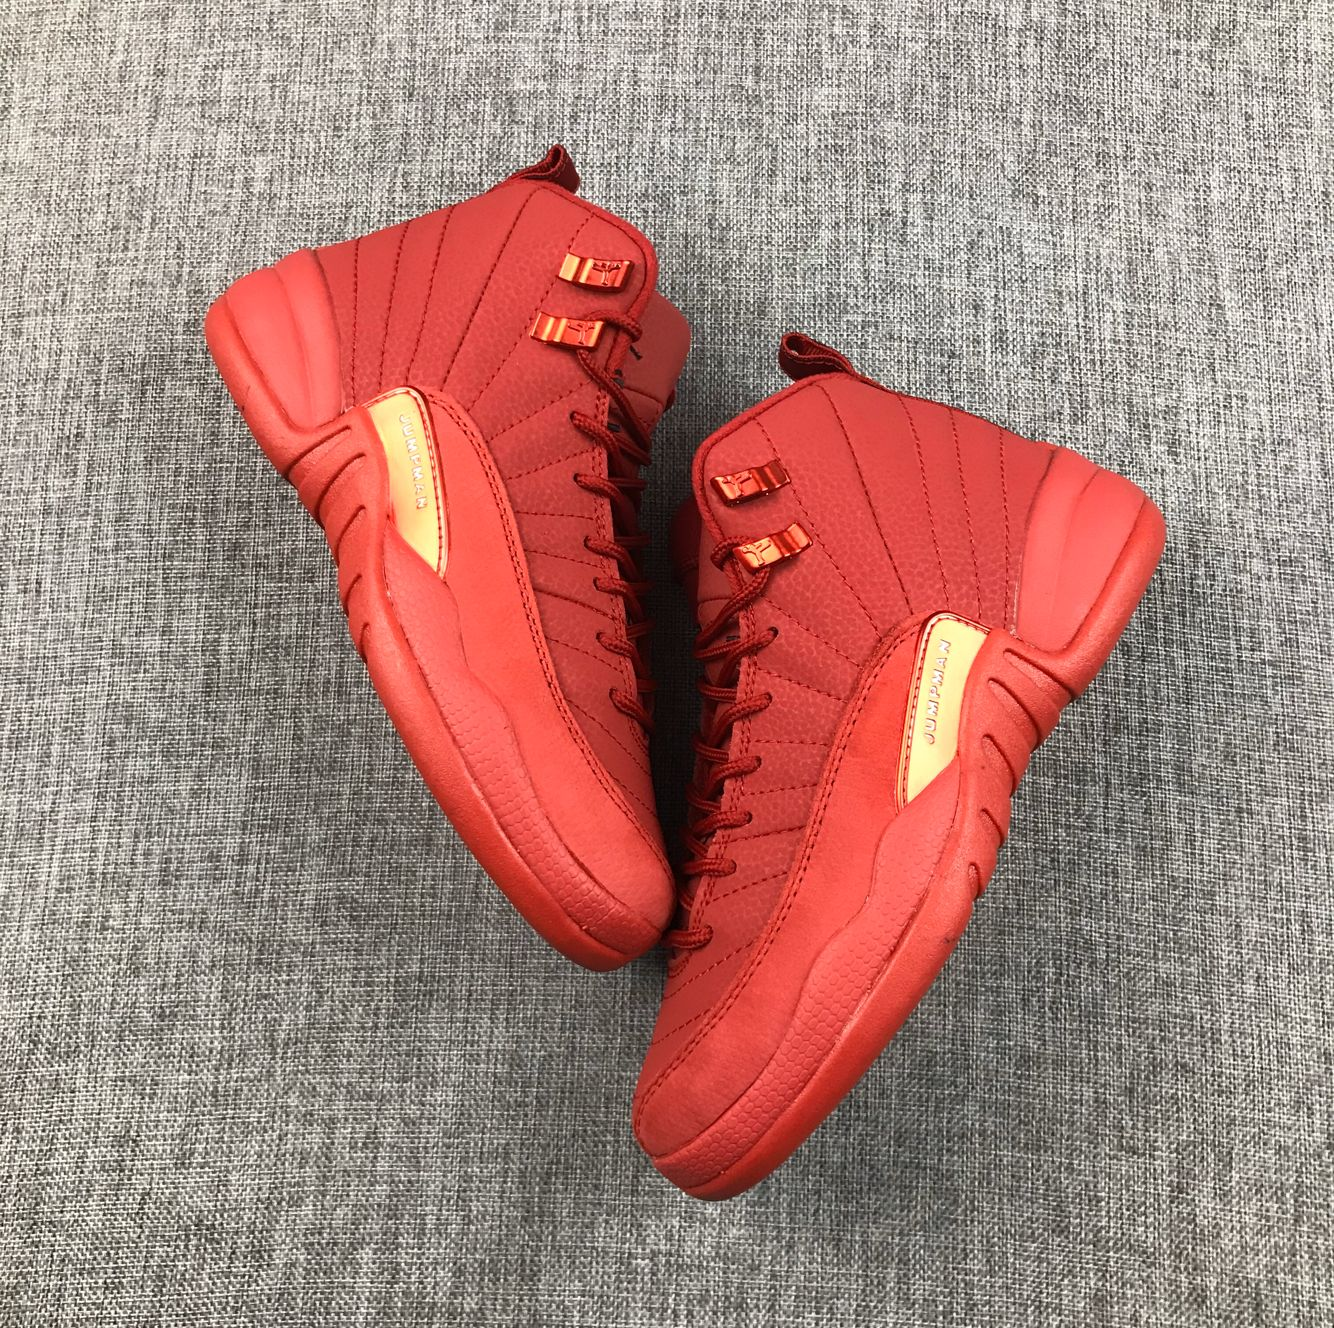 New Air Jordan 12 High All Red Shoes